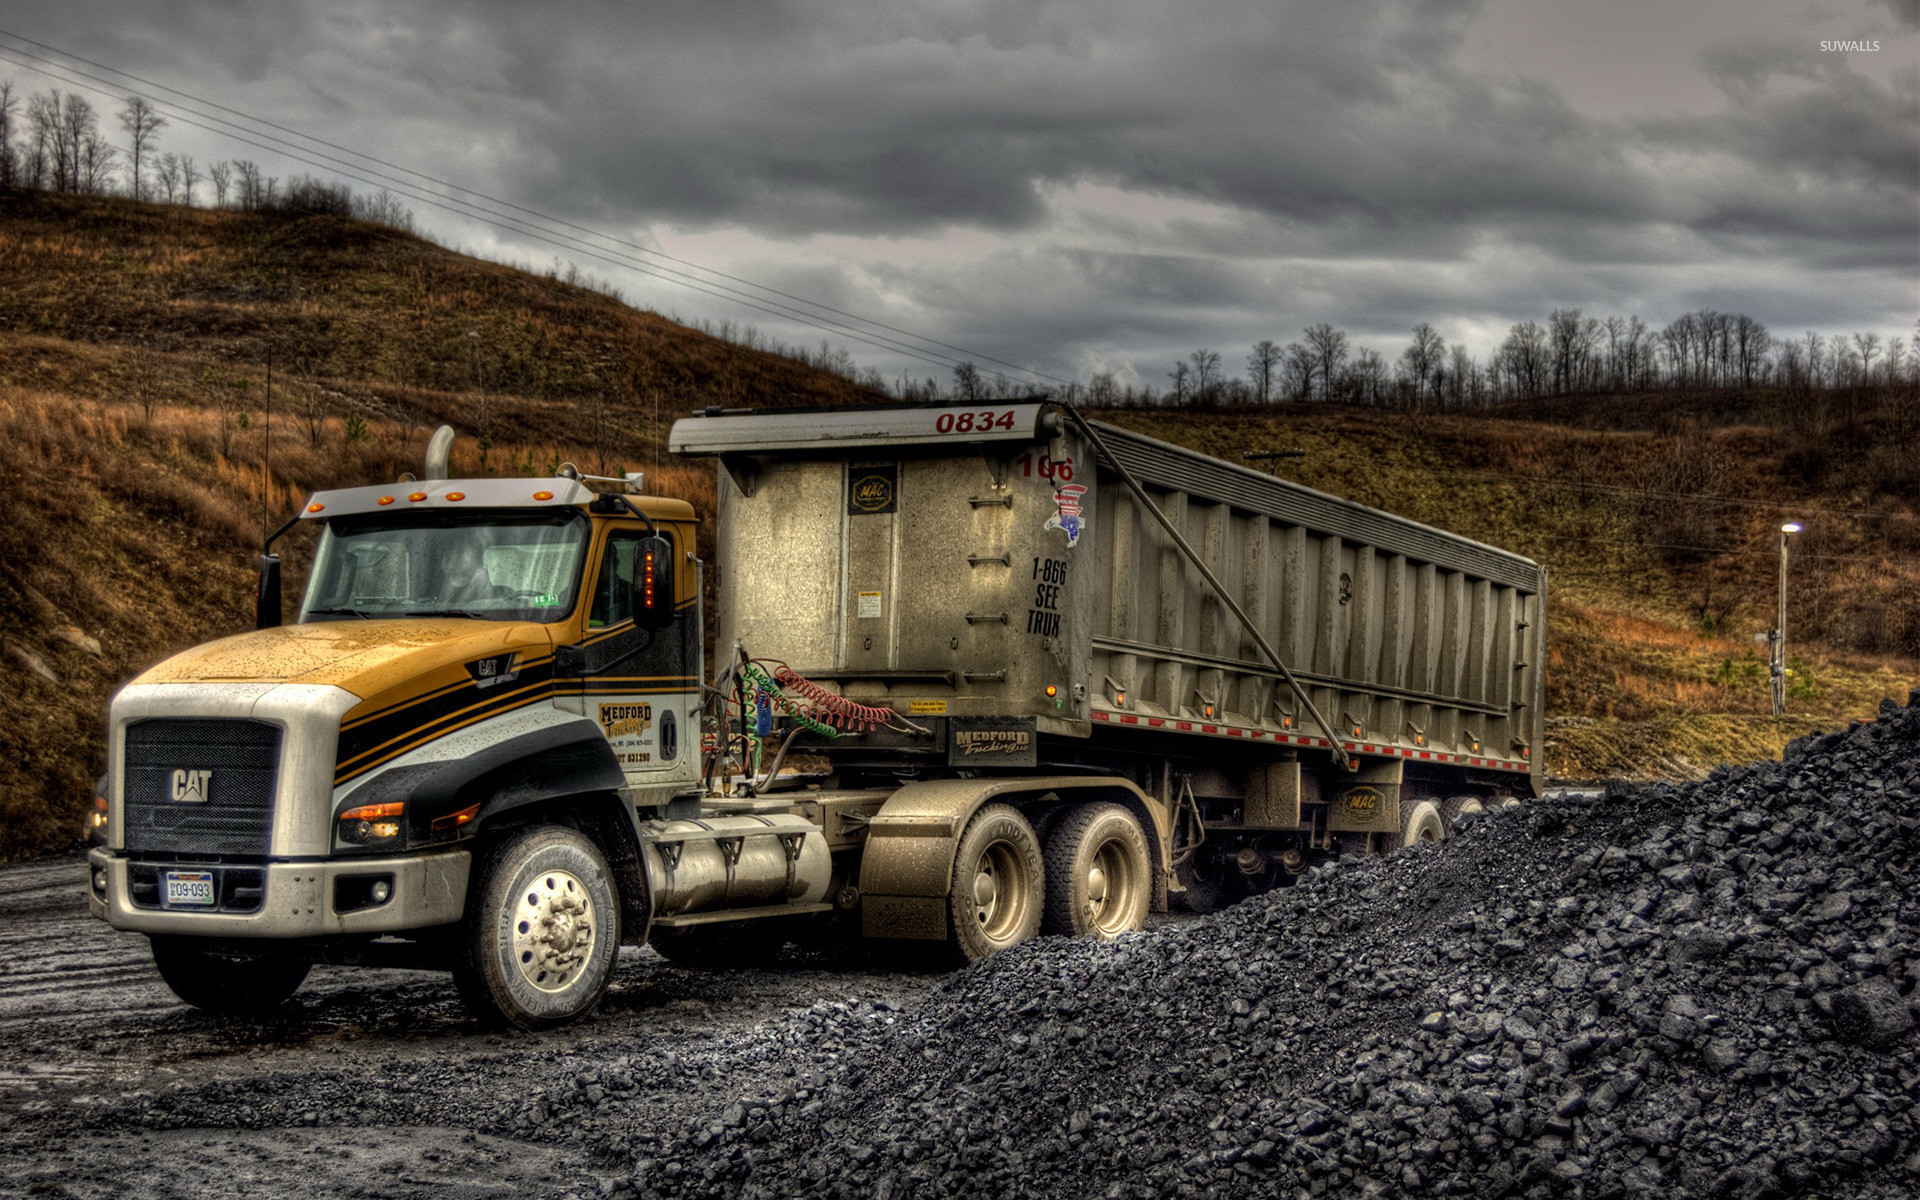 1920x1200 Caterpillar truck wallpaper - Photography wallpapers - #47927 ~ Truck  Wikipedia